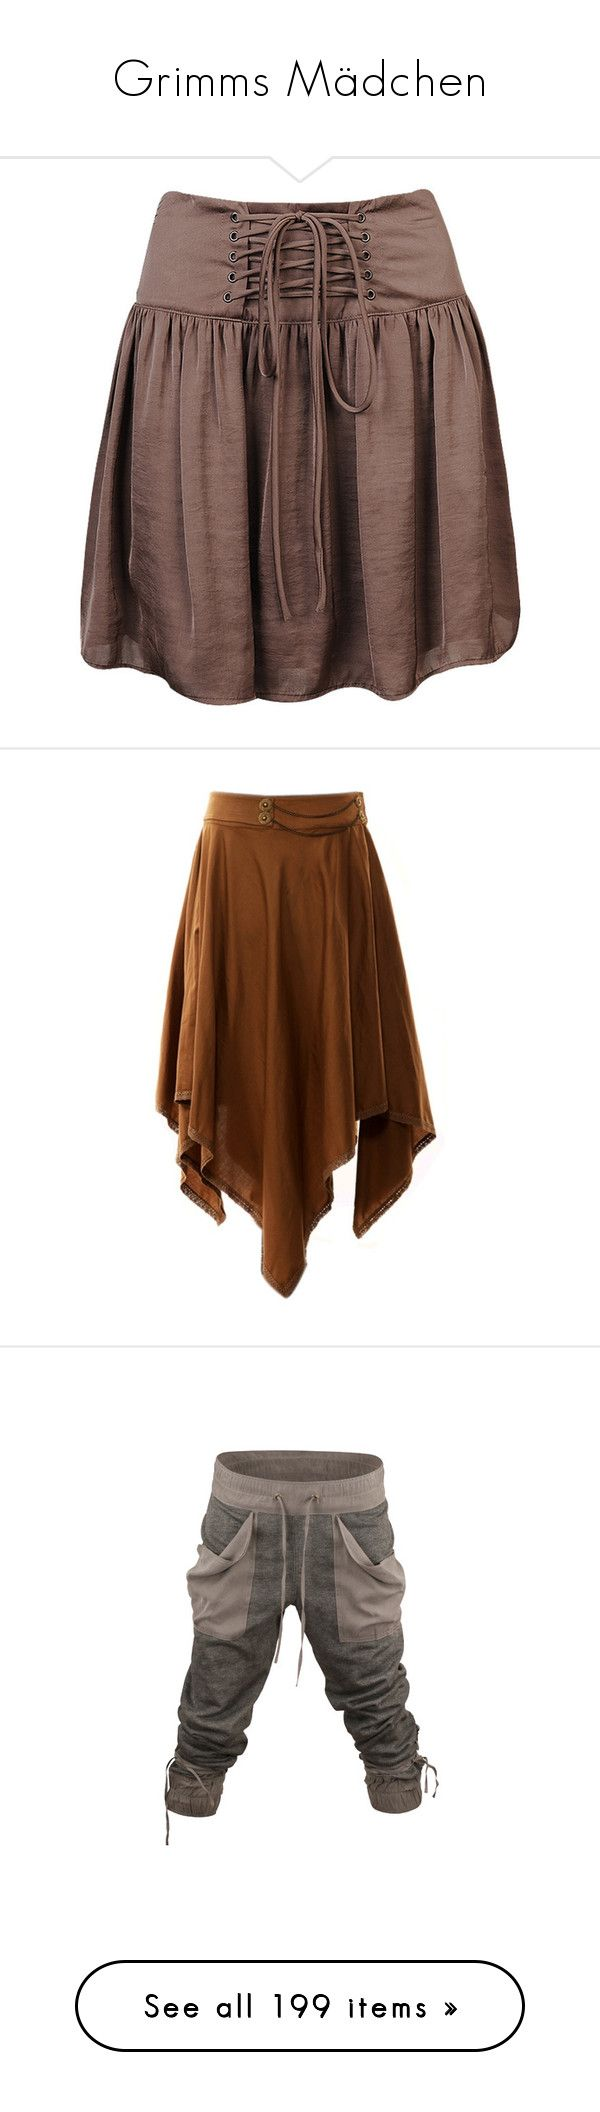 """""""Grimms Mädchen"""" by mezzo-hauptperson ❤ liked on Polyvore featuring skirts, bottoms, saias, faldas, women, panel skirt, brown skirt, shirred skirts, forever 21 and gathered skirt"""